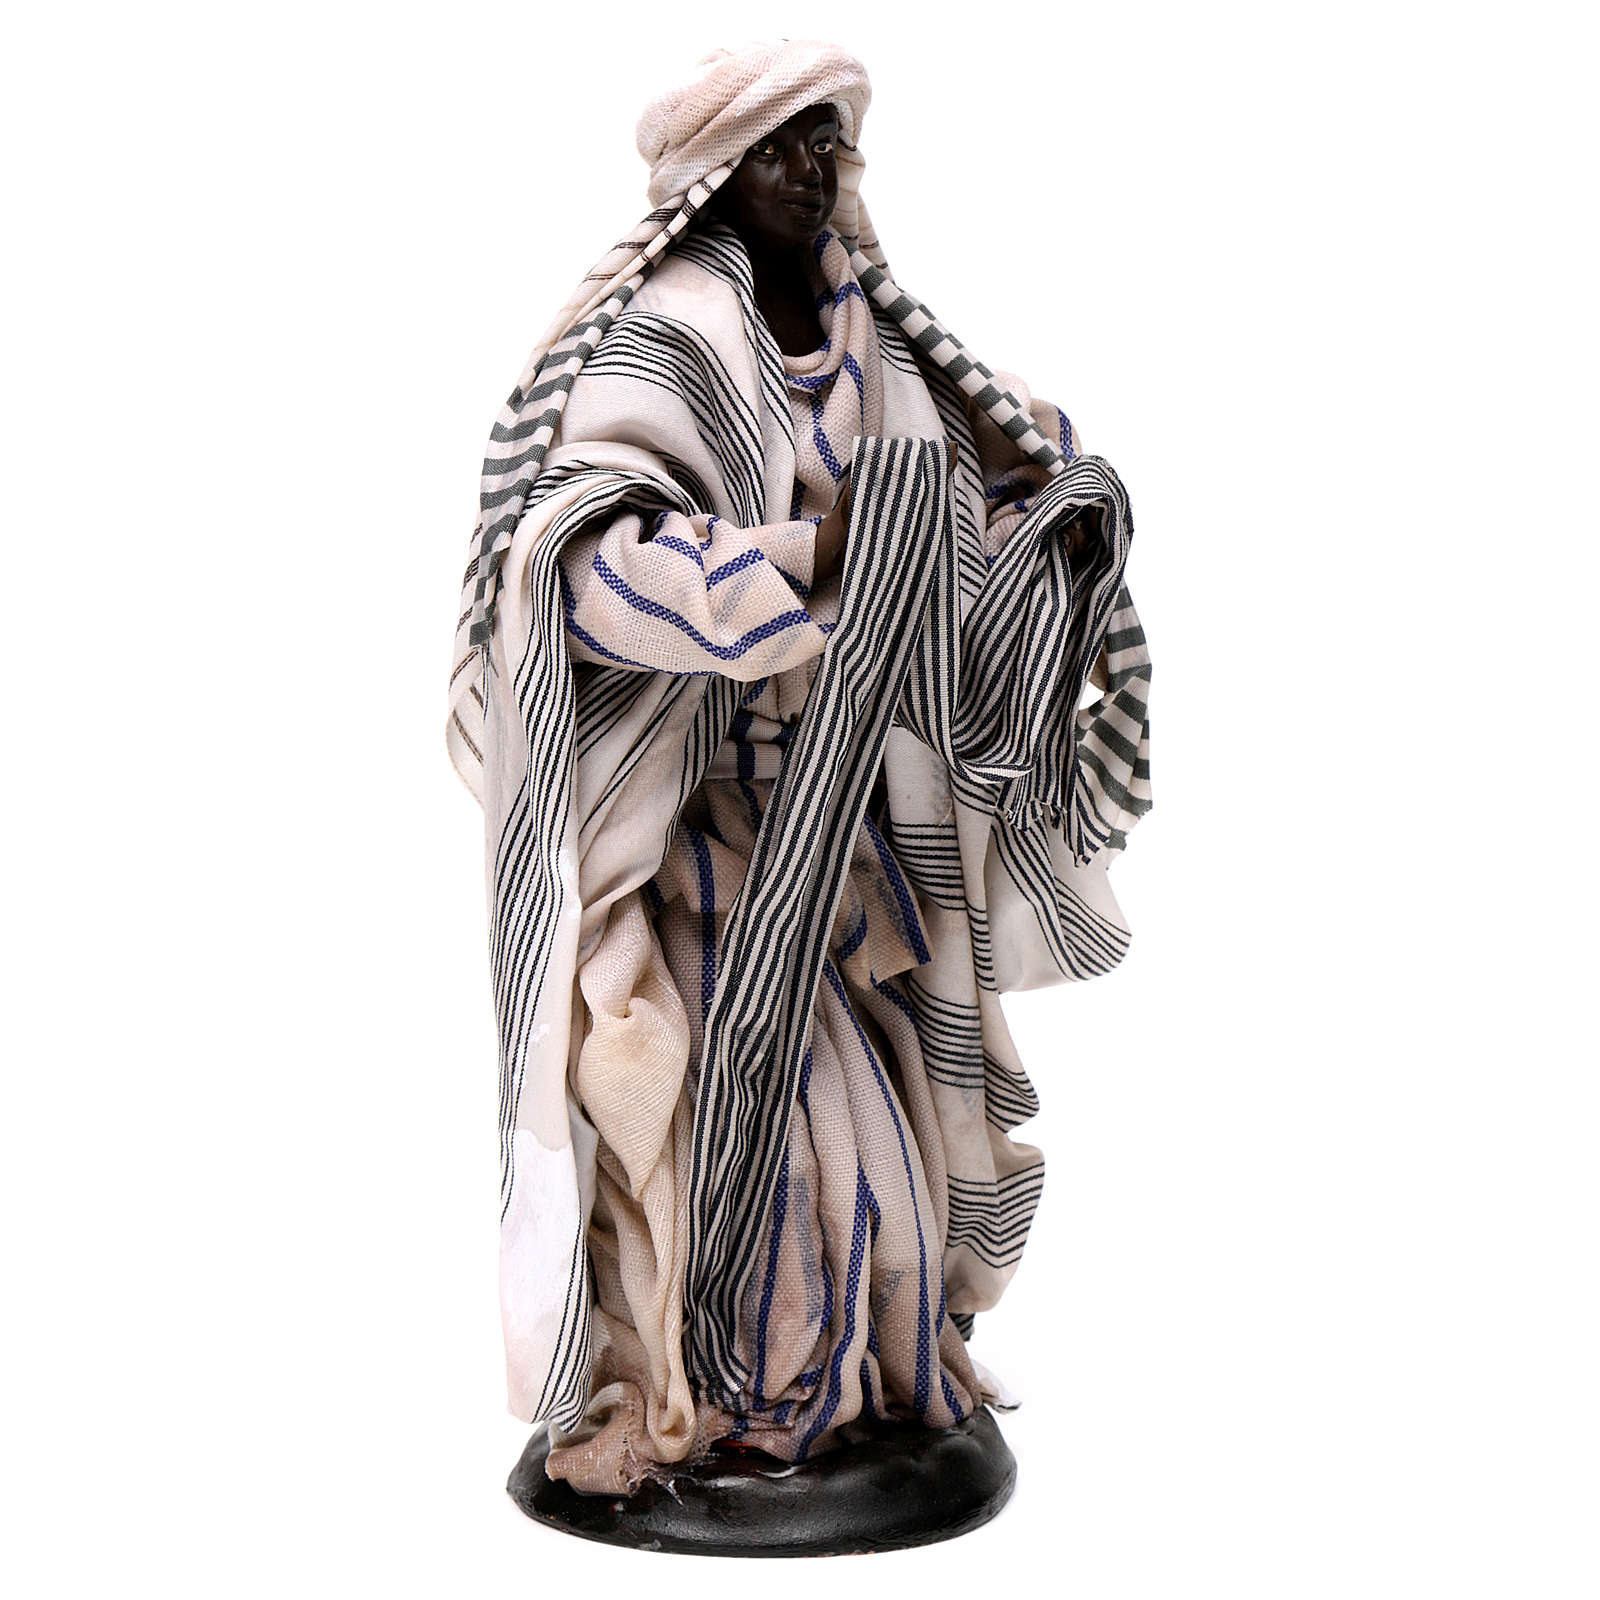 Neapolitan Nativity figurine, cloth seller, 18 cm 4